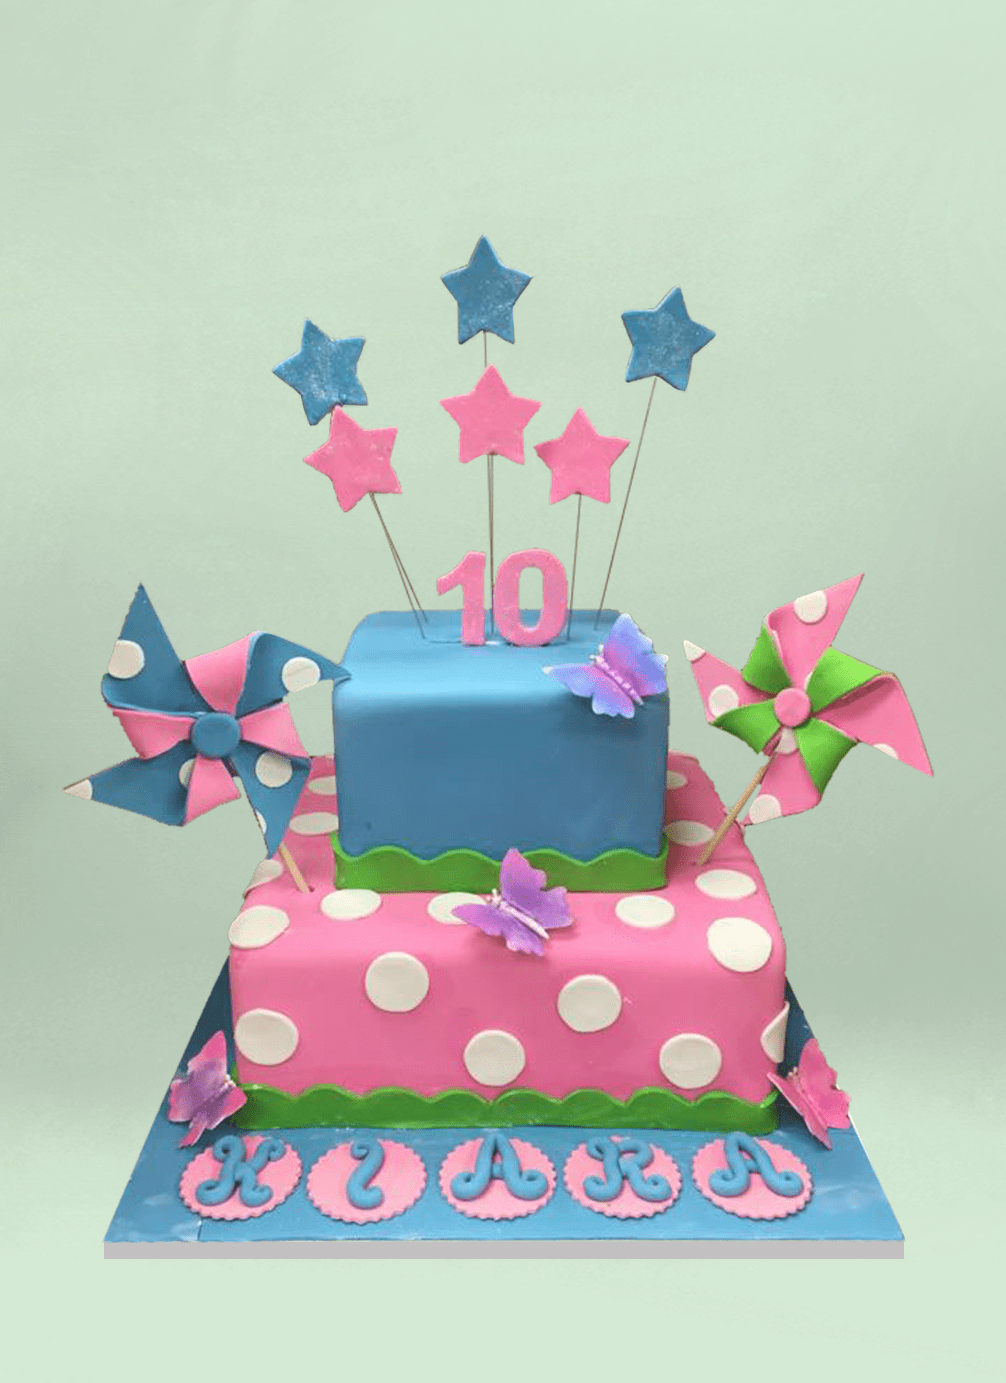 Photo: square fondant cake with fondant pinwheels and stars sticking out